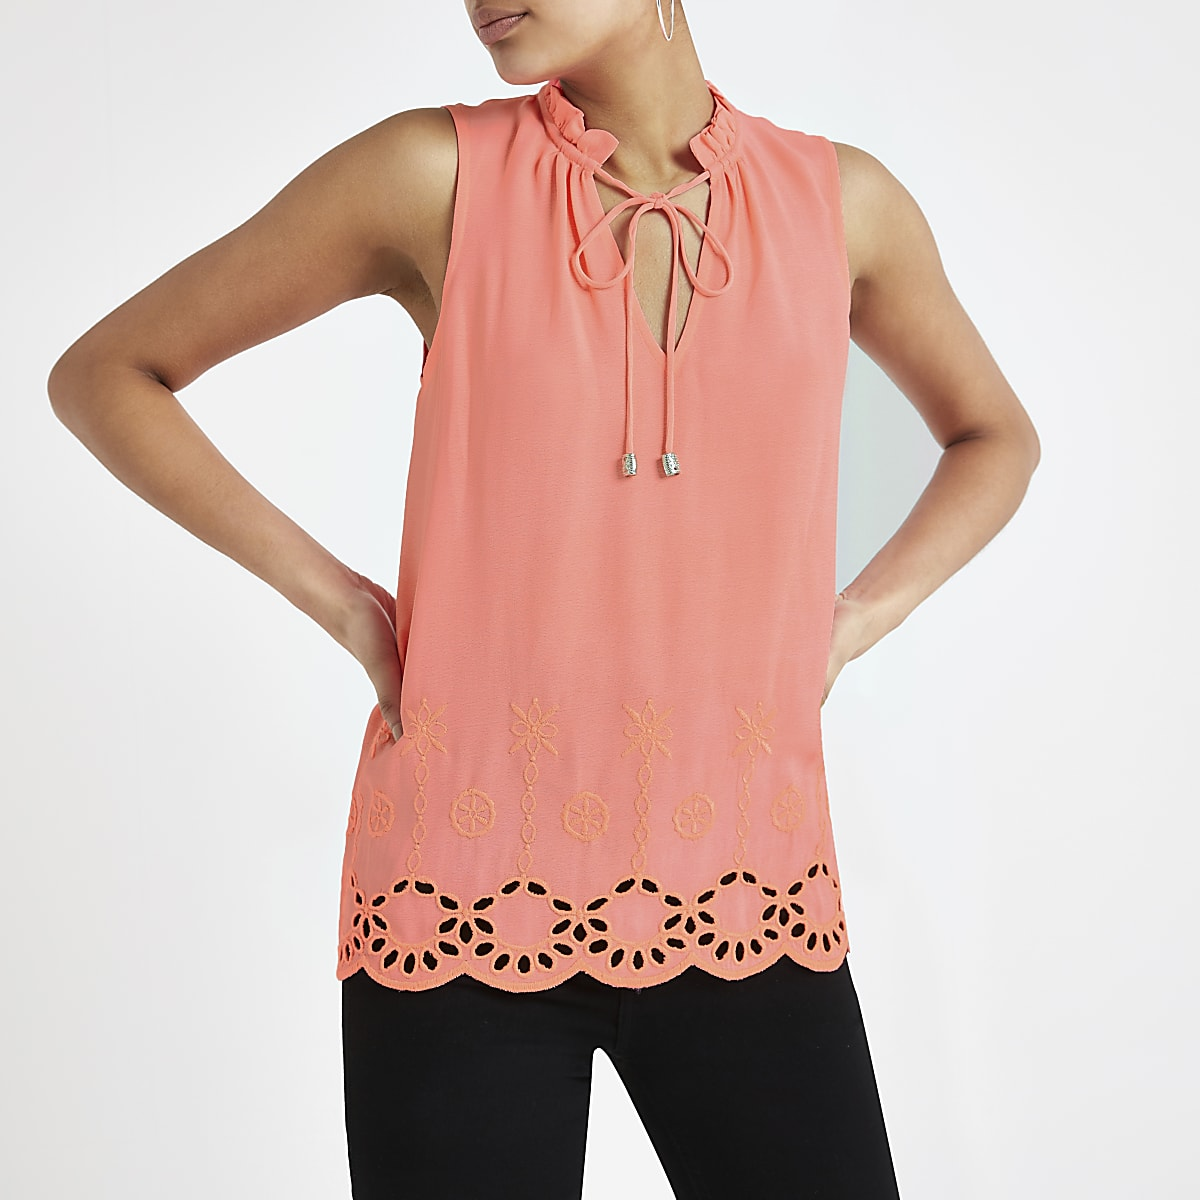 Neon pink broiderie tank top